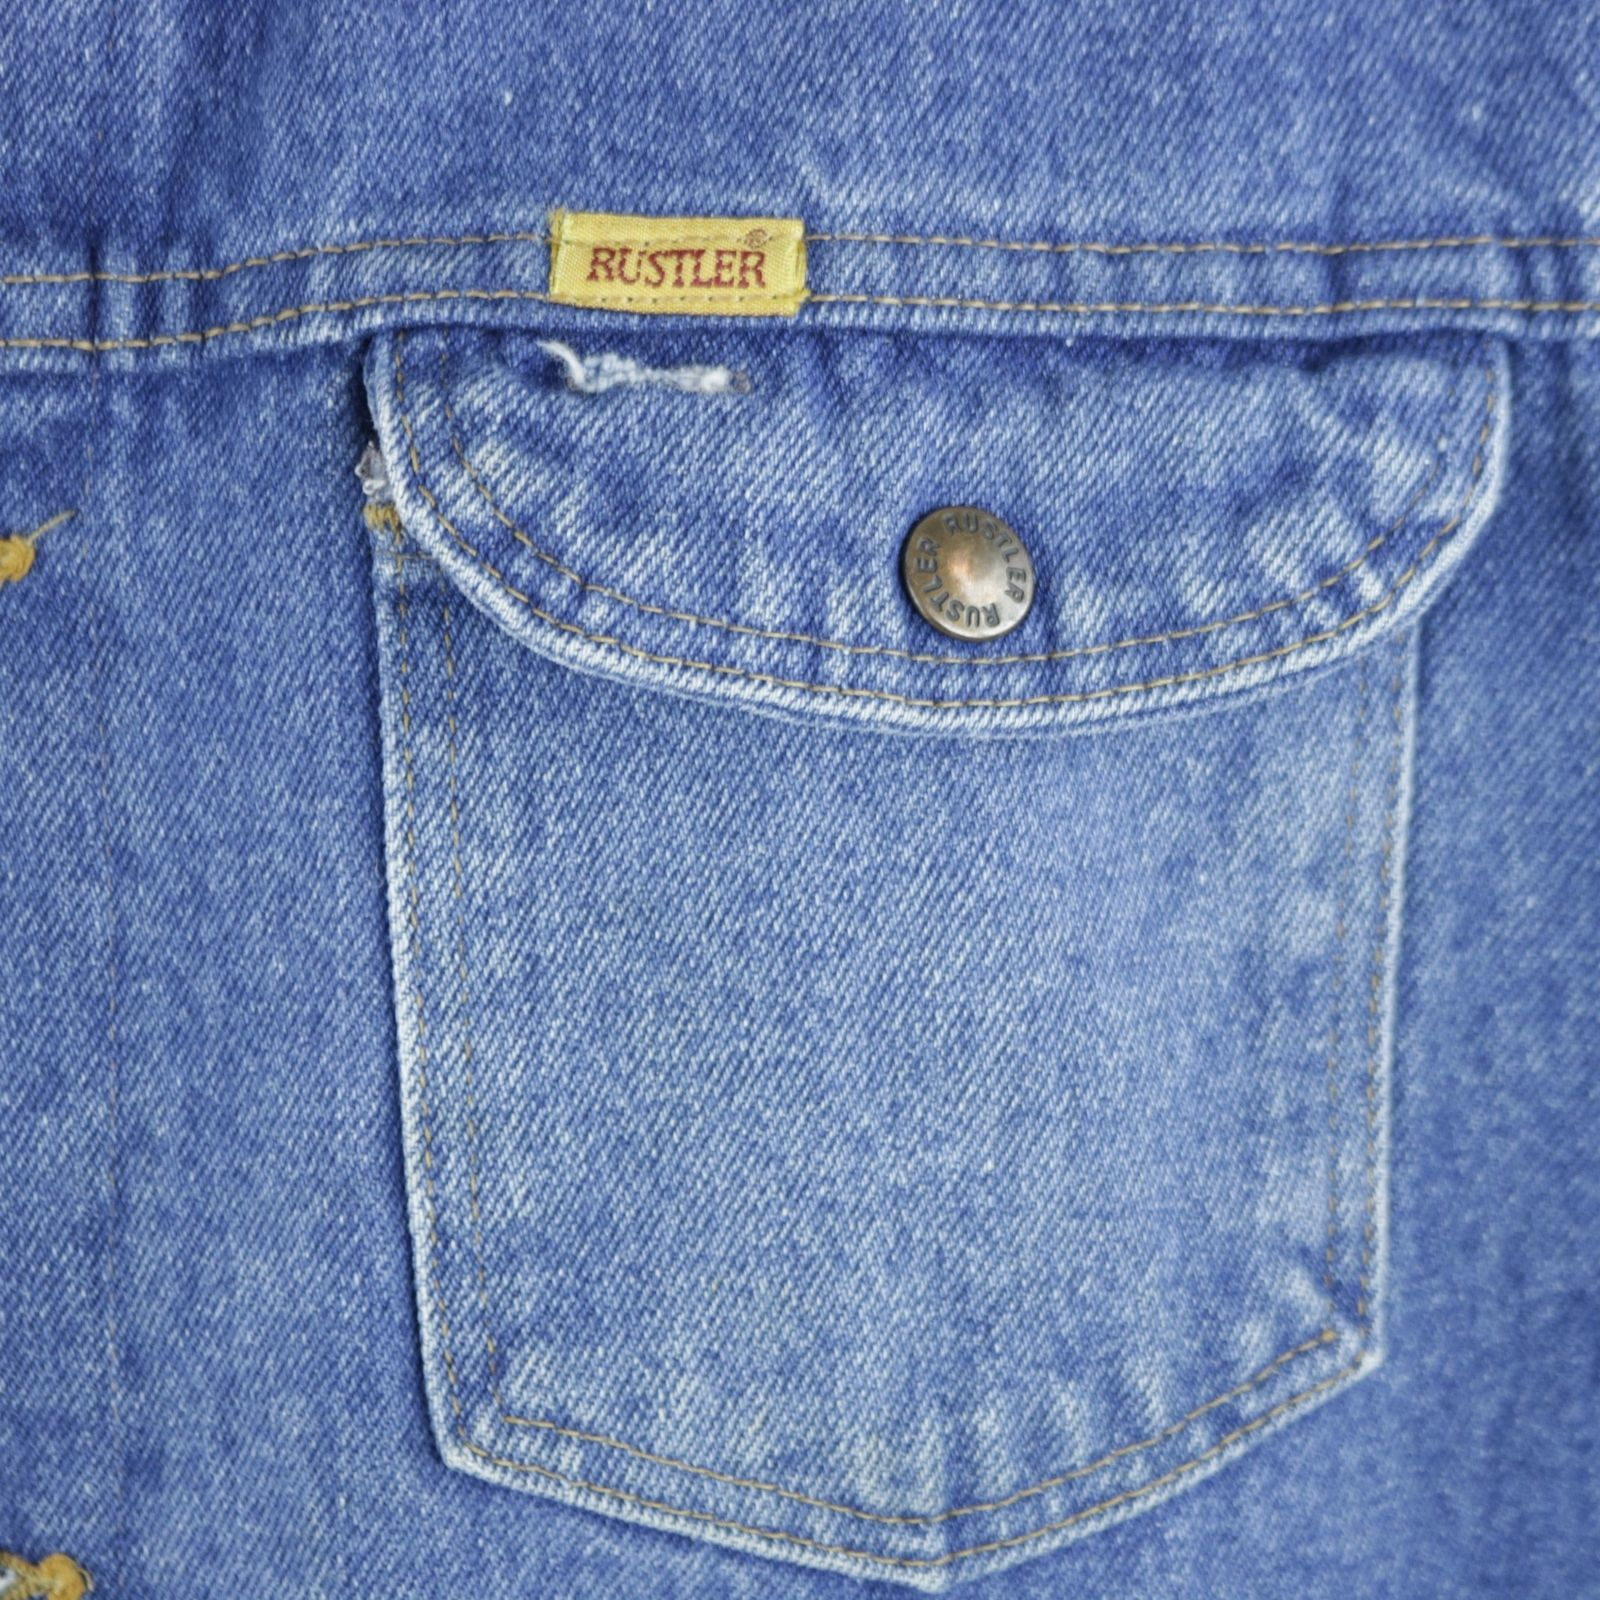 11a2389d16a ... The Doors Blue Jean Jacket Denim Trucker Jim Morrison Rustler Made in  USA XLARGE ...